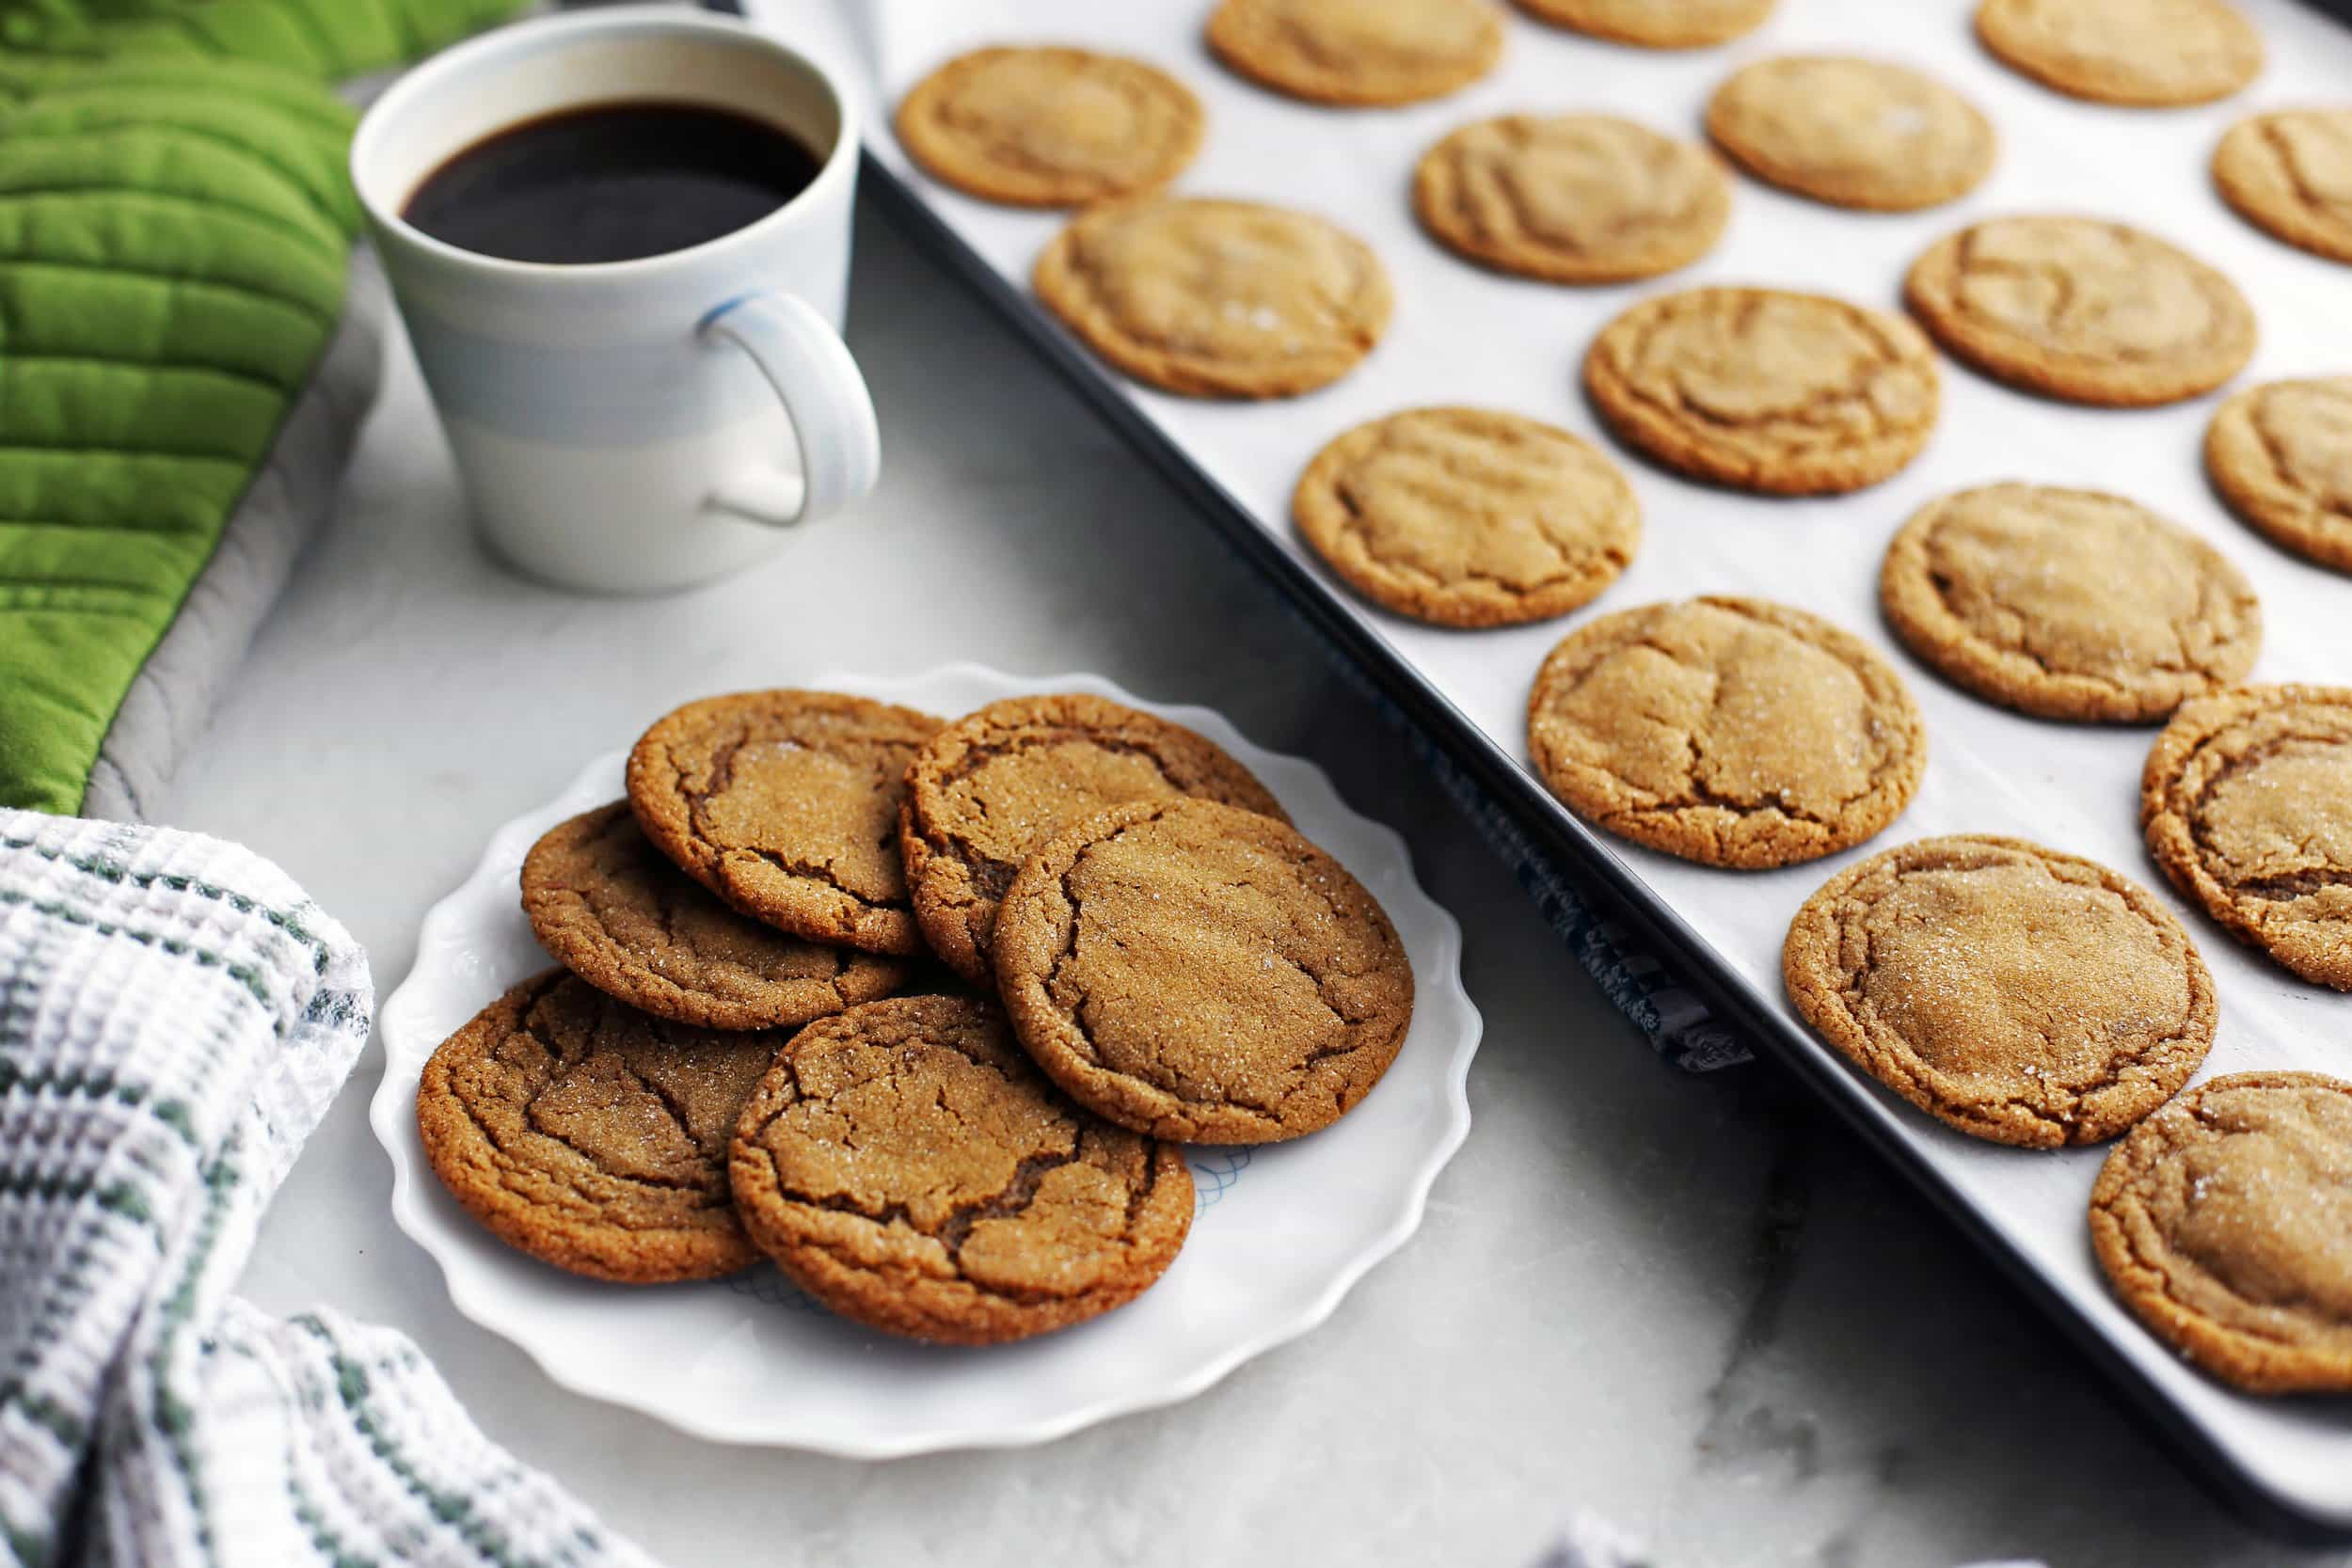 A plate full of chewy gingersnap (ginger molasses) cookies with more cookies on a baking sheet beside it.